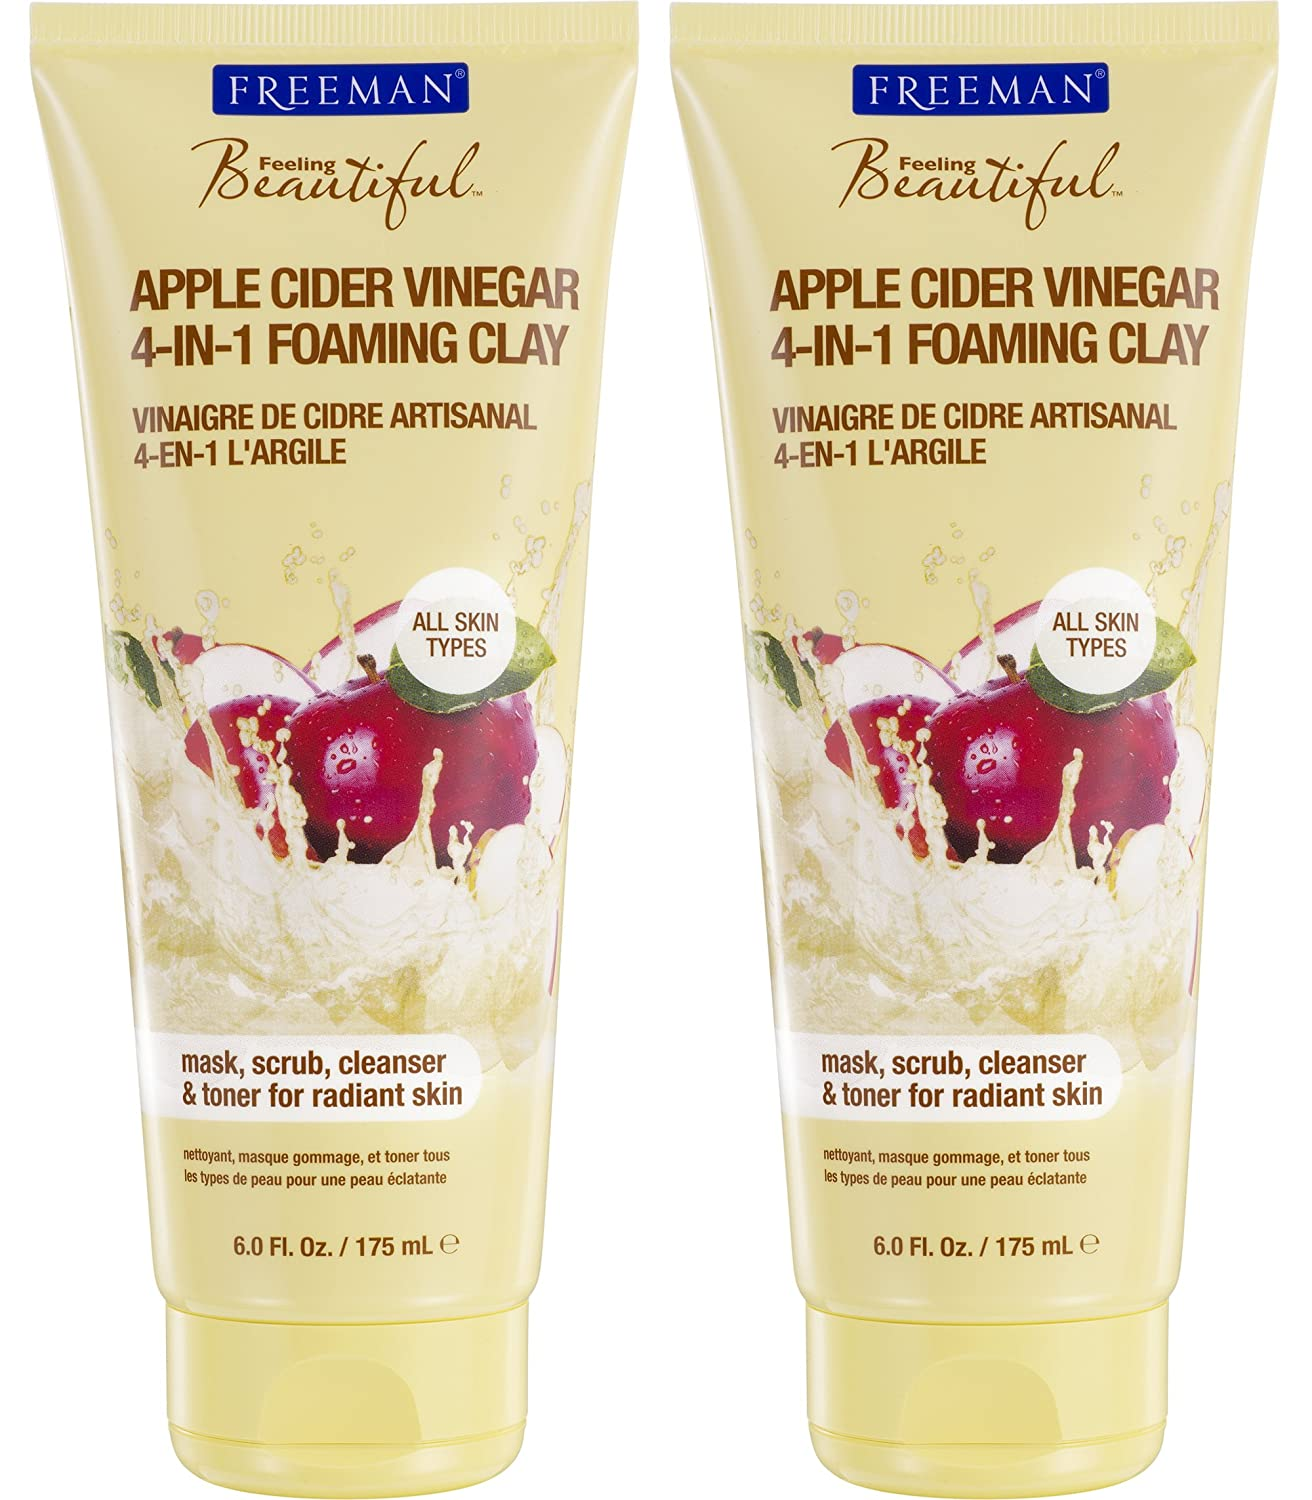 Freeman Feeling Beautiful Apple Cider Vinegar 4-in-1 Foaming Clay Mask and Scrub, 6-Ounce, 2 Count